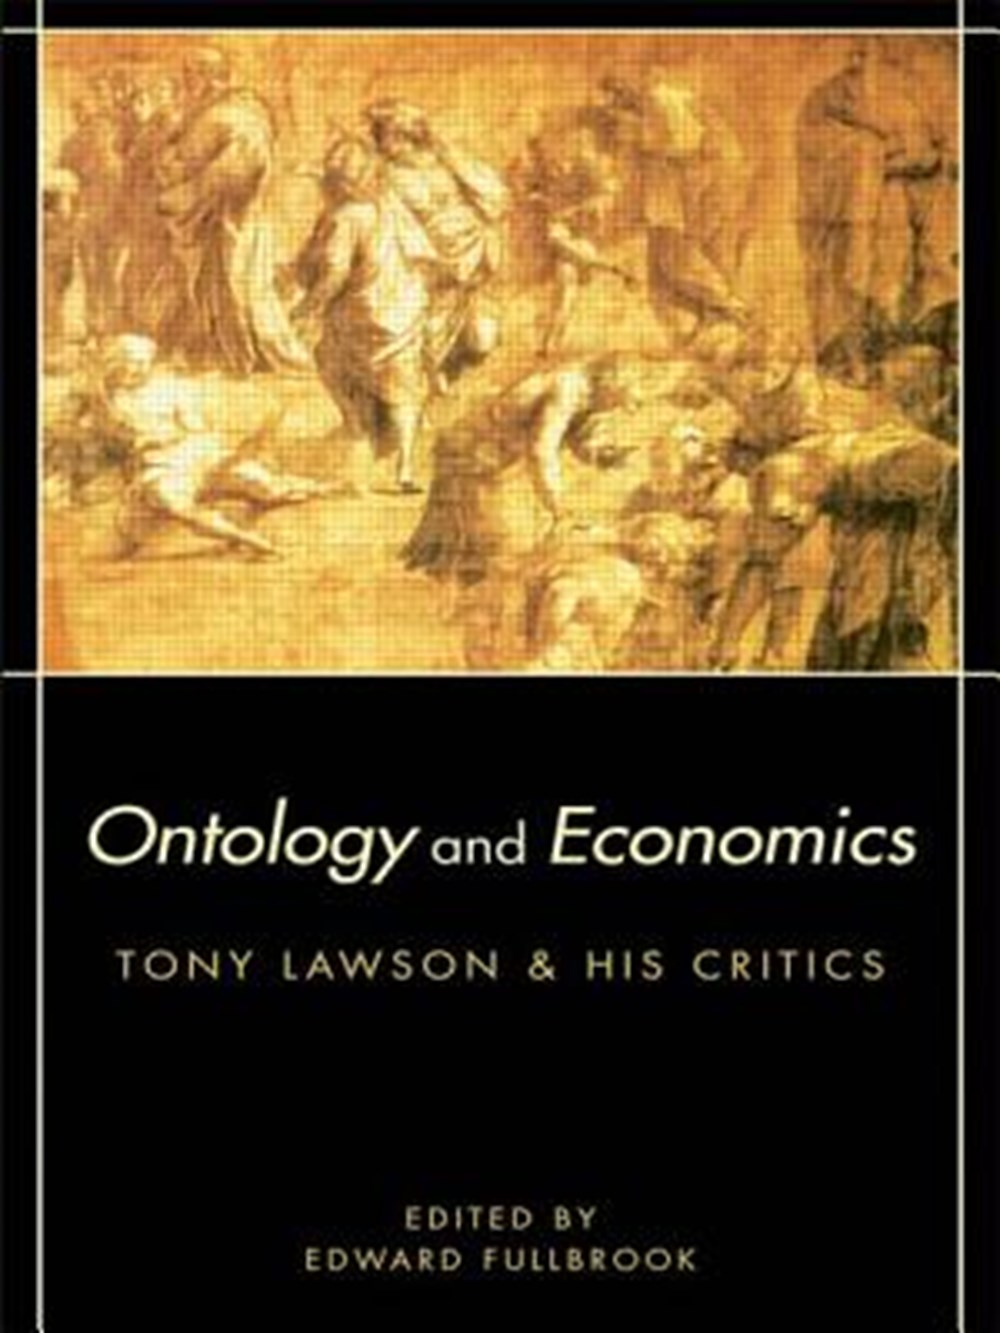 Ontology and Economics Tony Lawson and His Critics